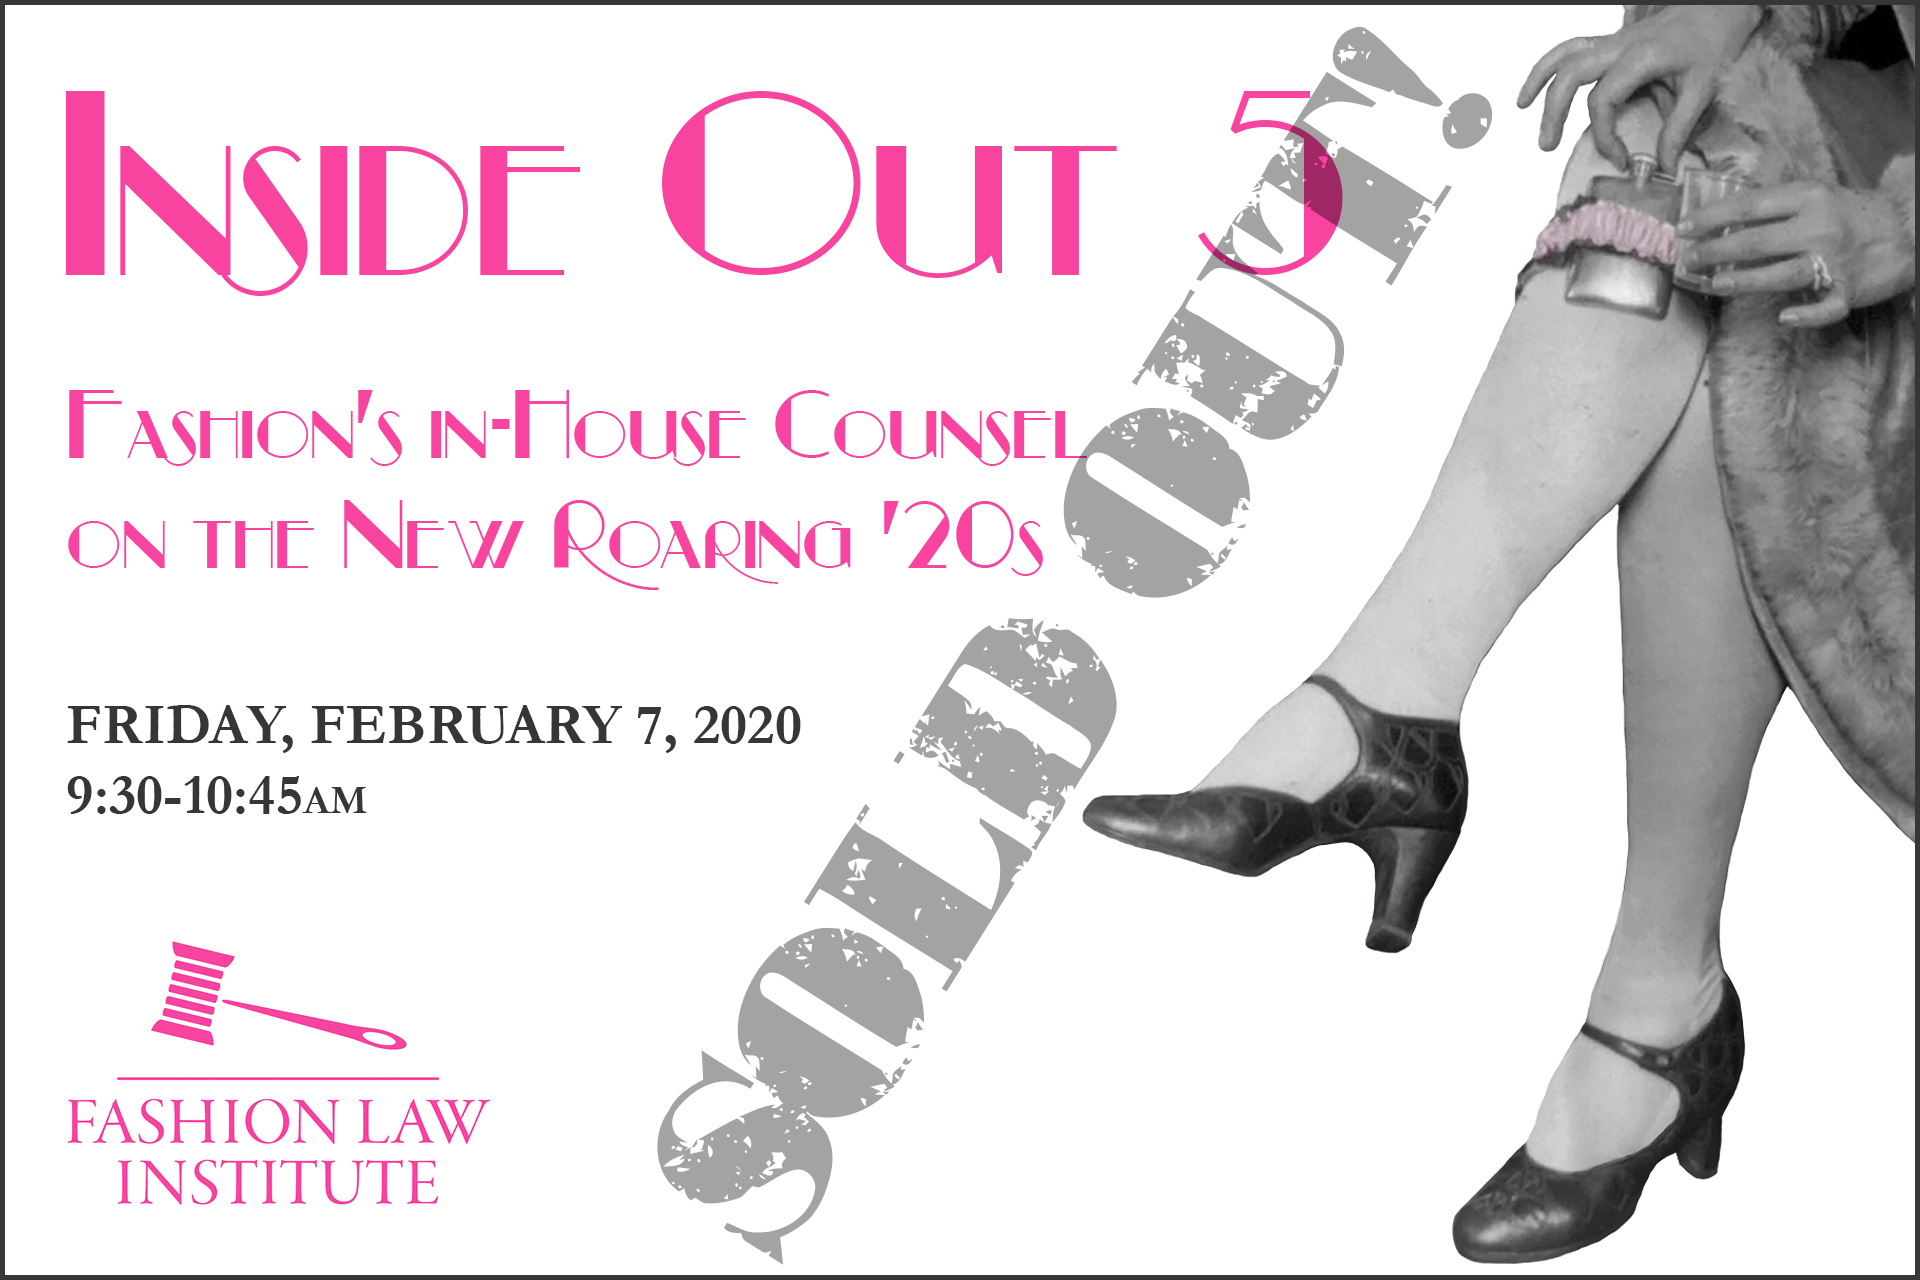 Sold out announcement for event -- Inside Out 5: Fashion's In-House Counsel on the New Roaring '20s, on Friday, February 7, 9:30-10:45am. Black and white image of a Prohibition-era woman's legs with a flask tucked in a garter.